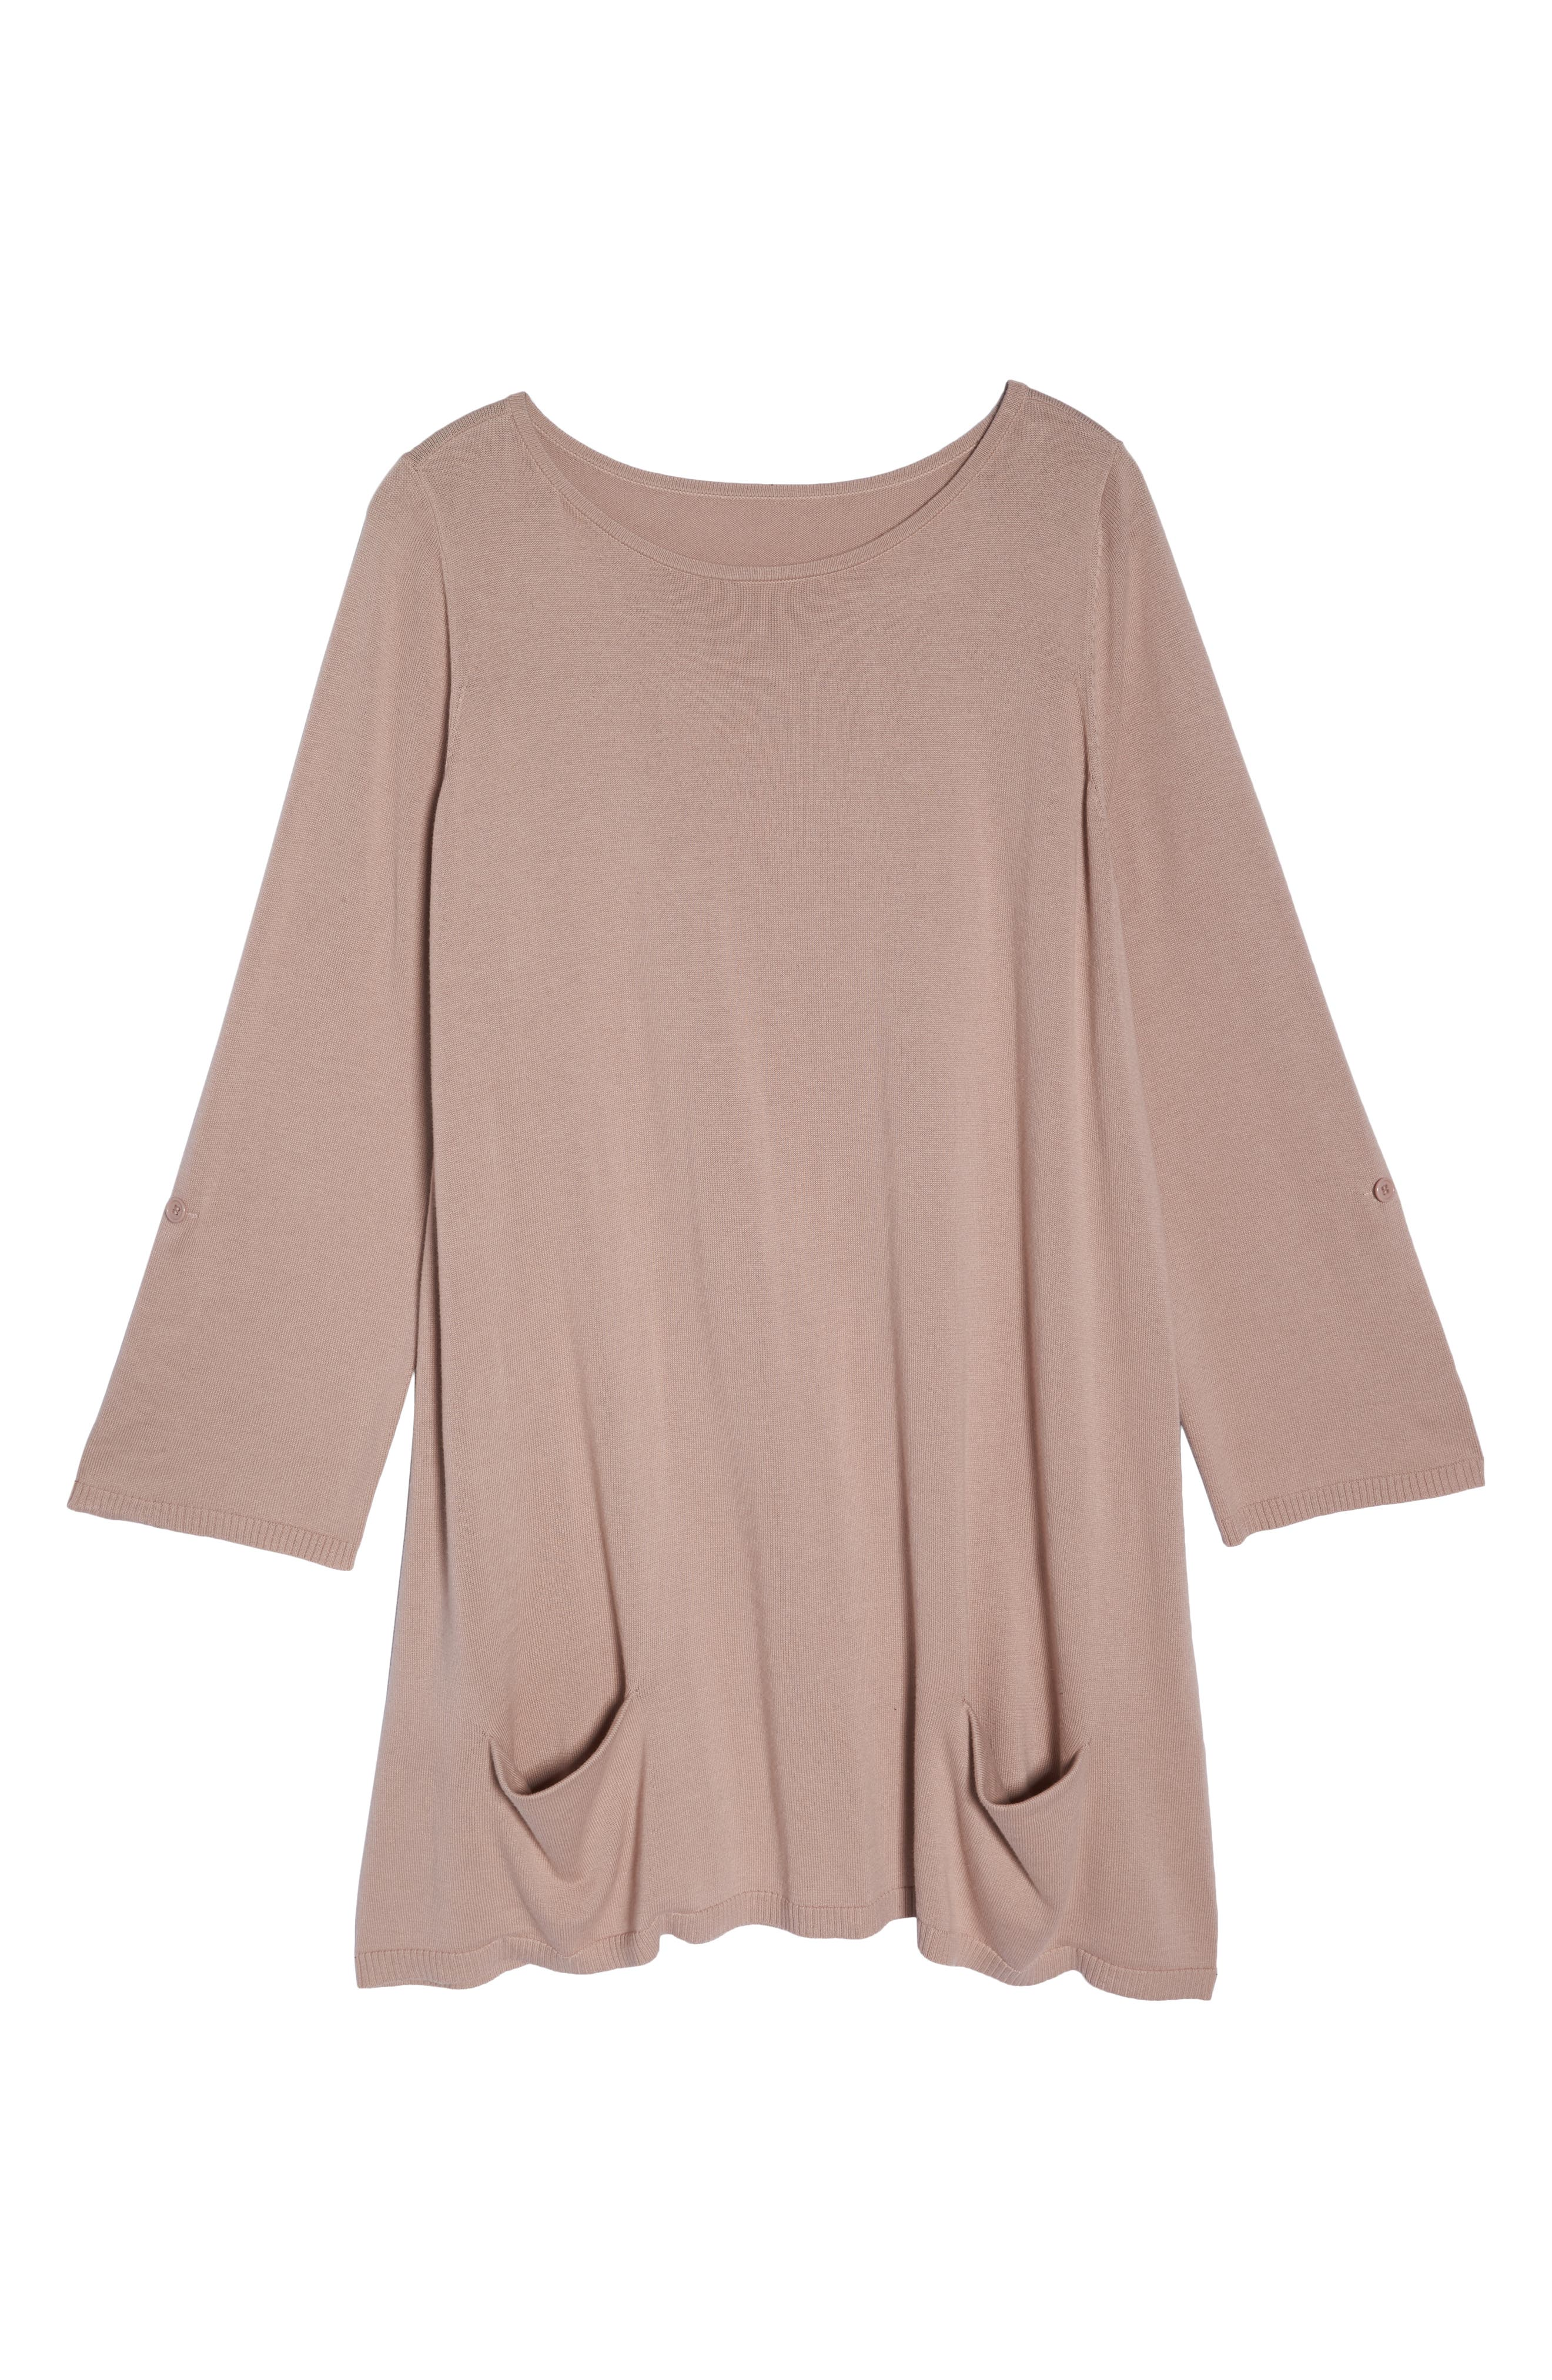 Roll Sleeve Tunic Sweater,                             Alternate thumbnail 6, color,                             PINK ADOBE